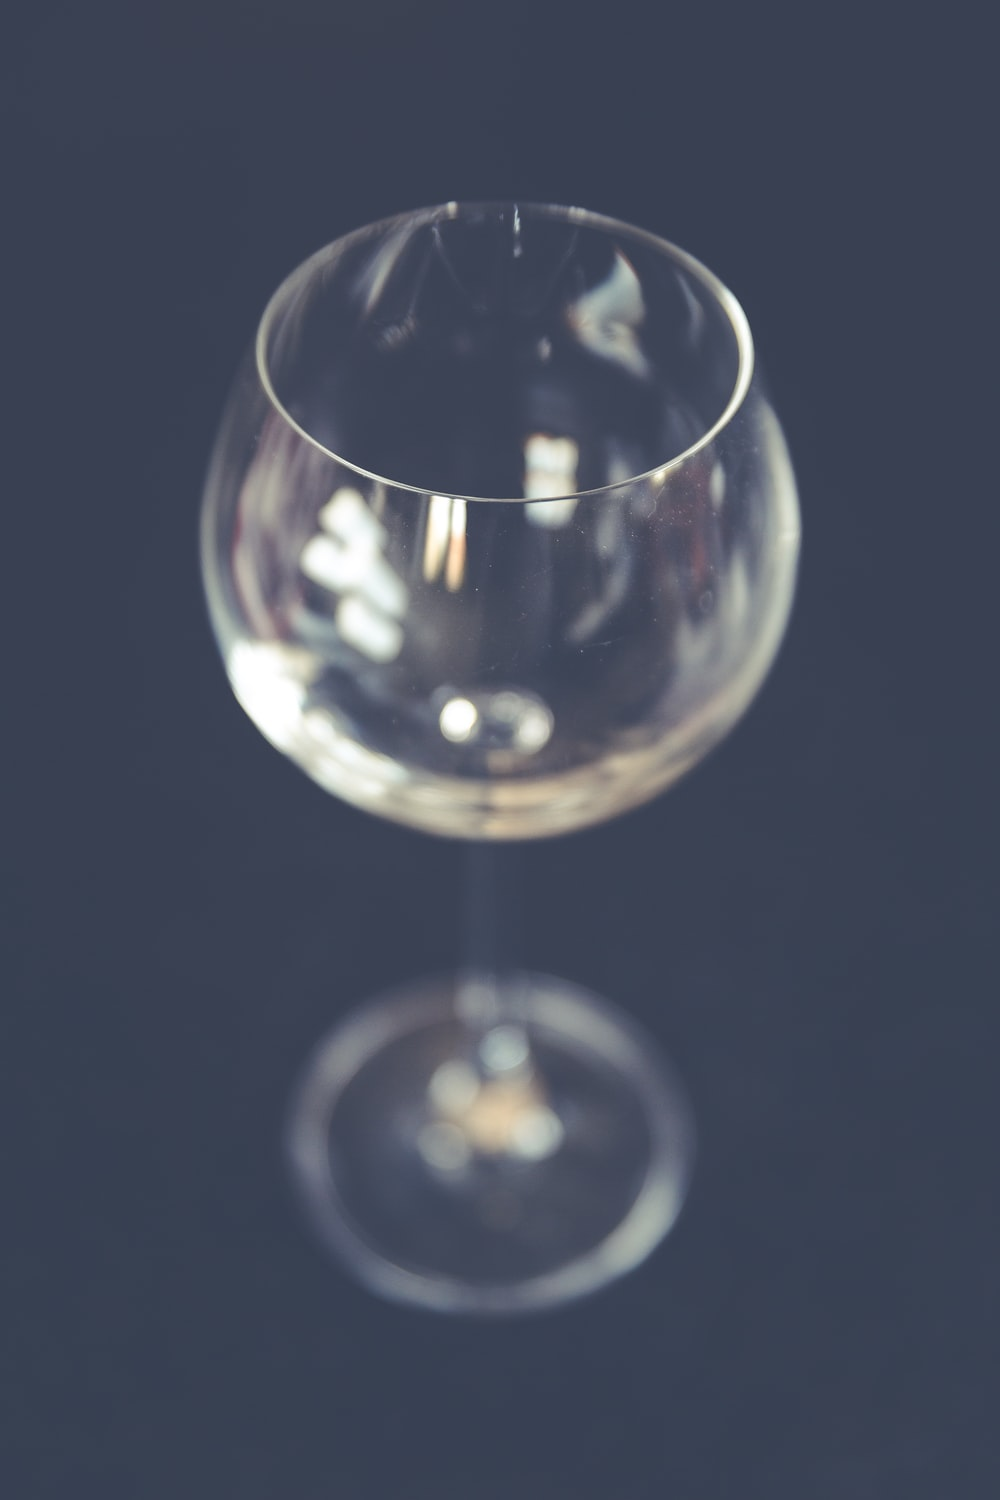 clear long-stemmed wine glass